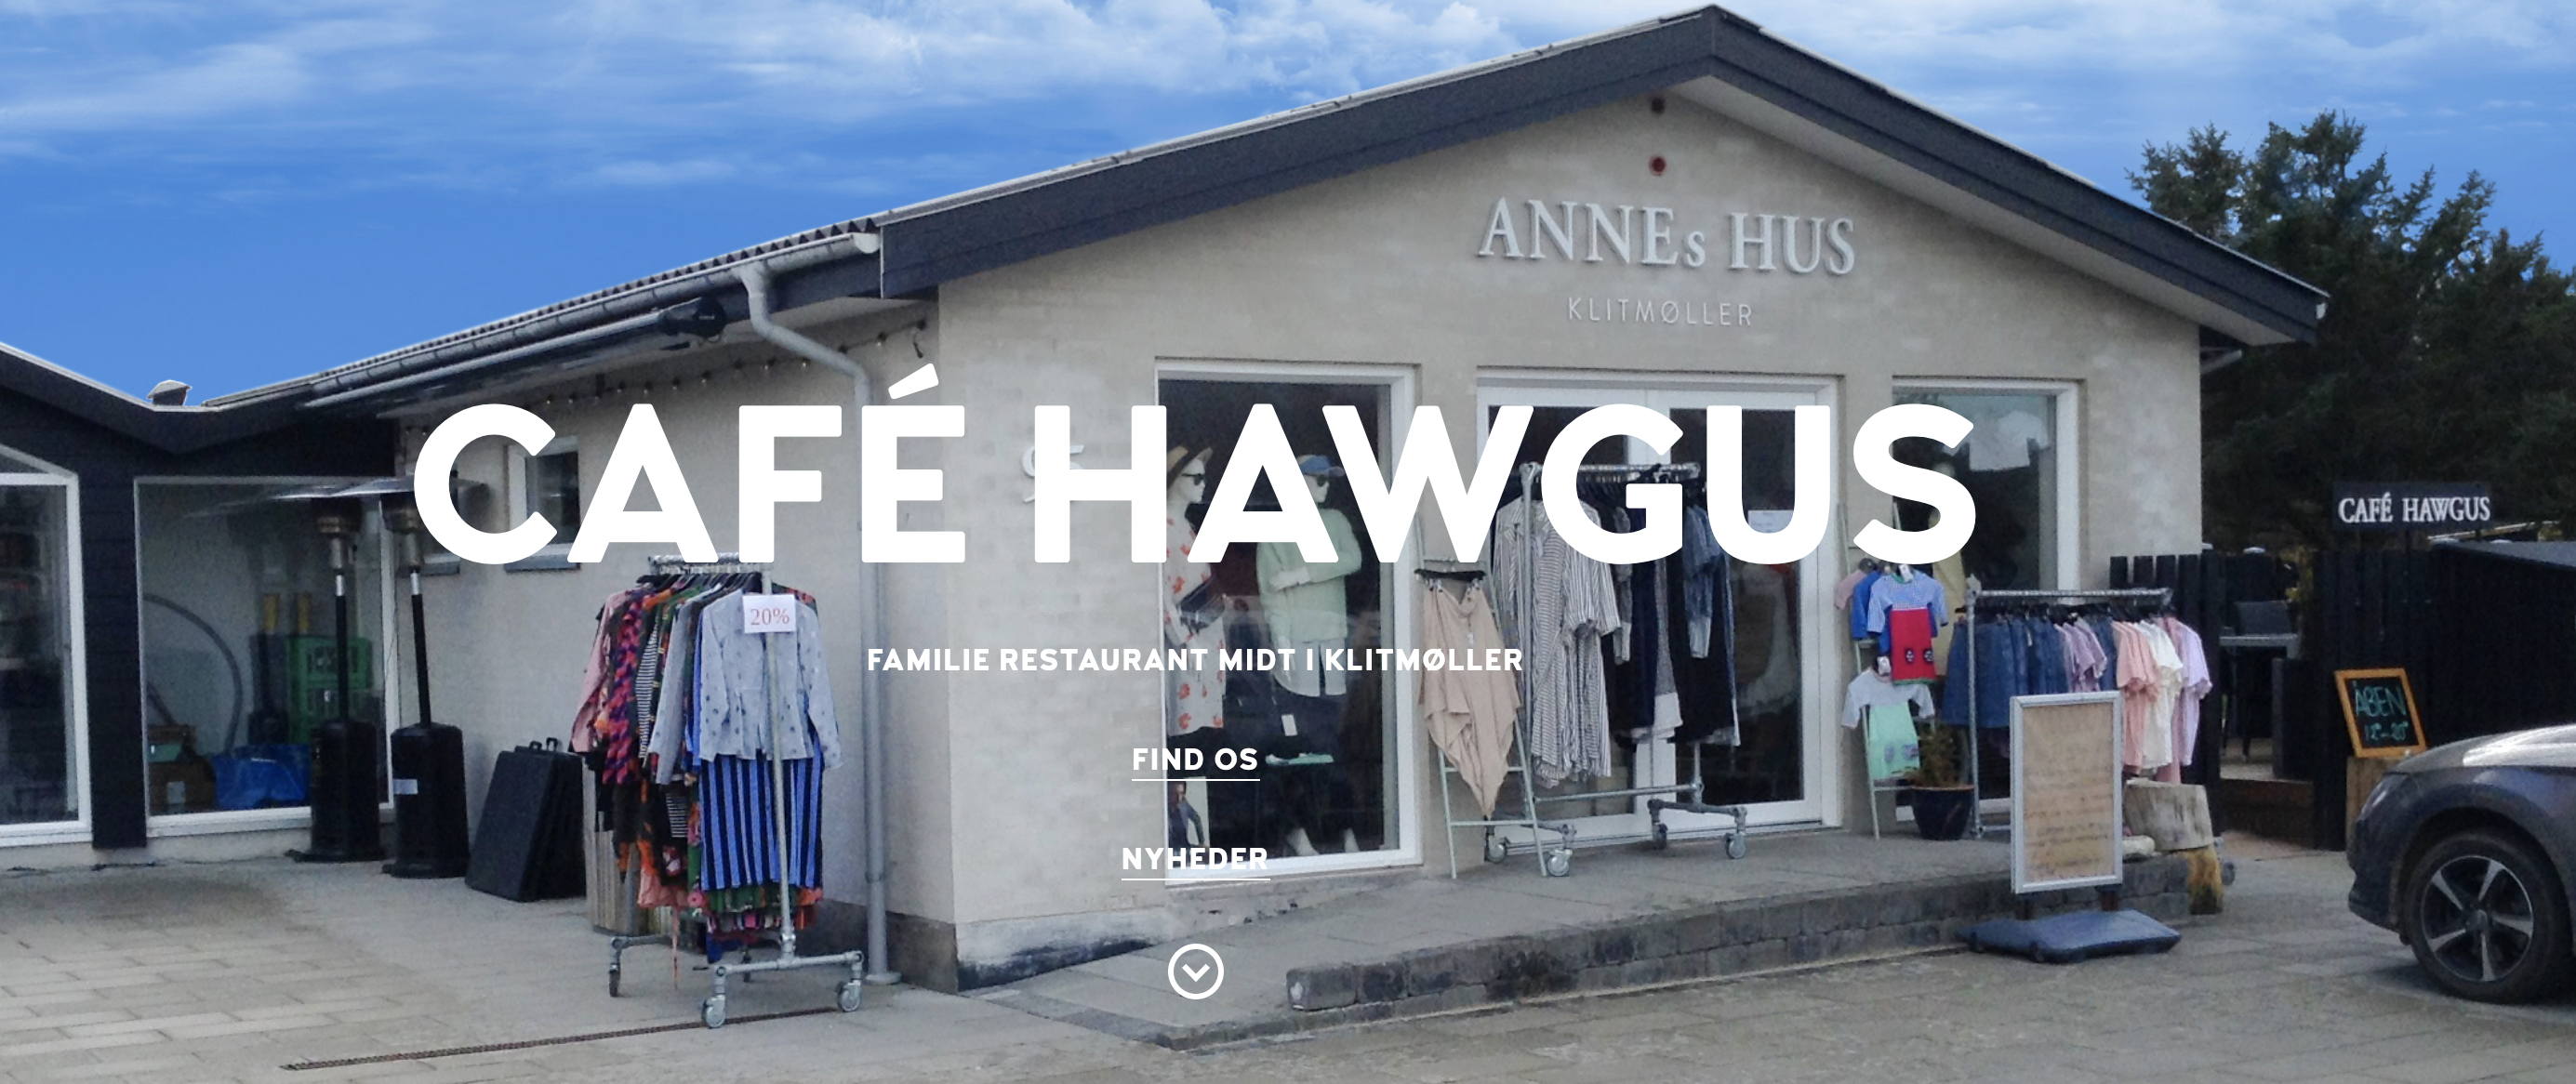 Café Hawgus